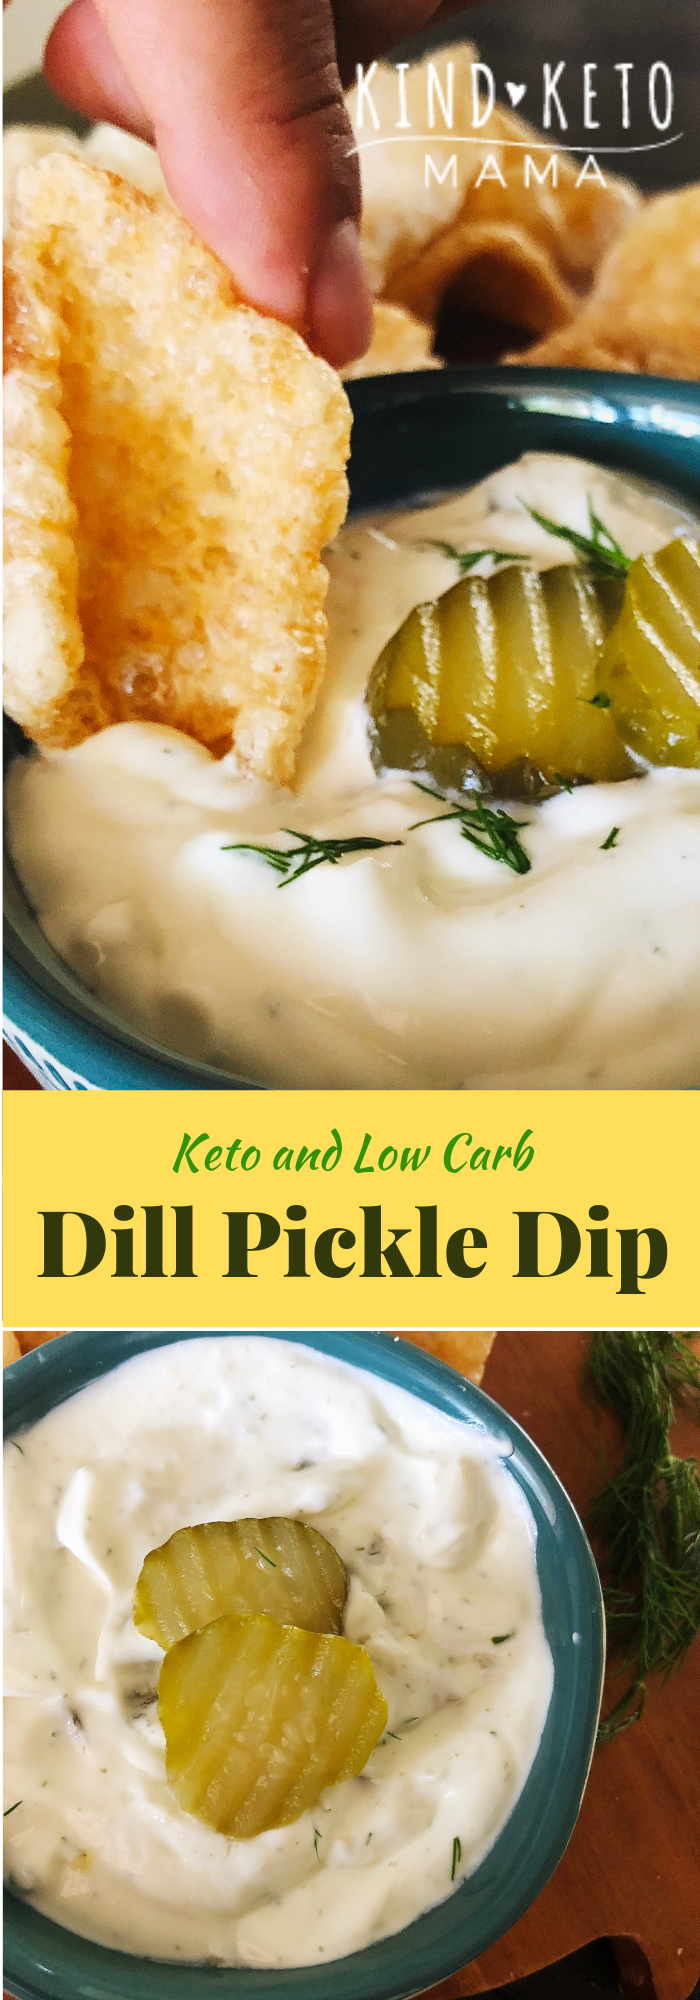 Keto Low Carb Sour Cream Pickle Dip